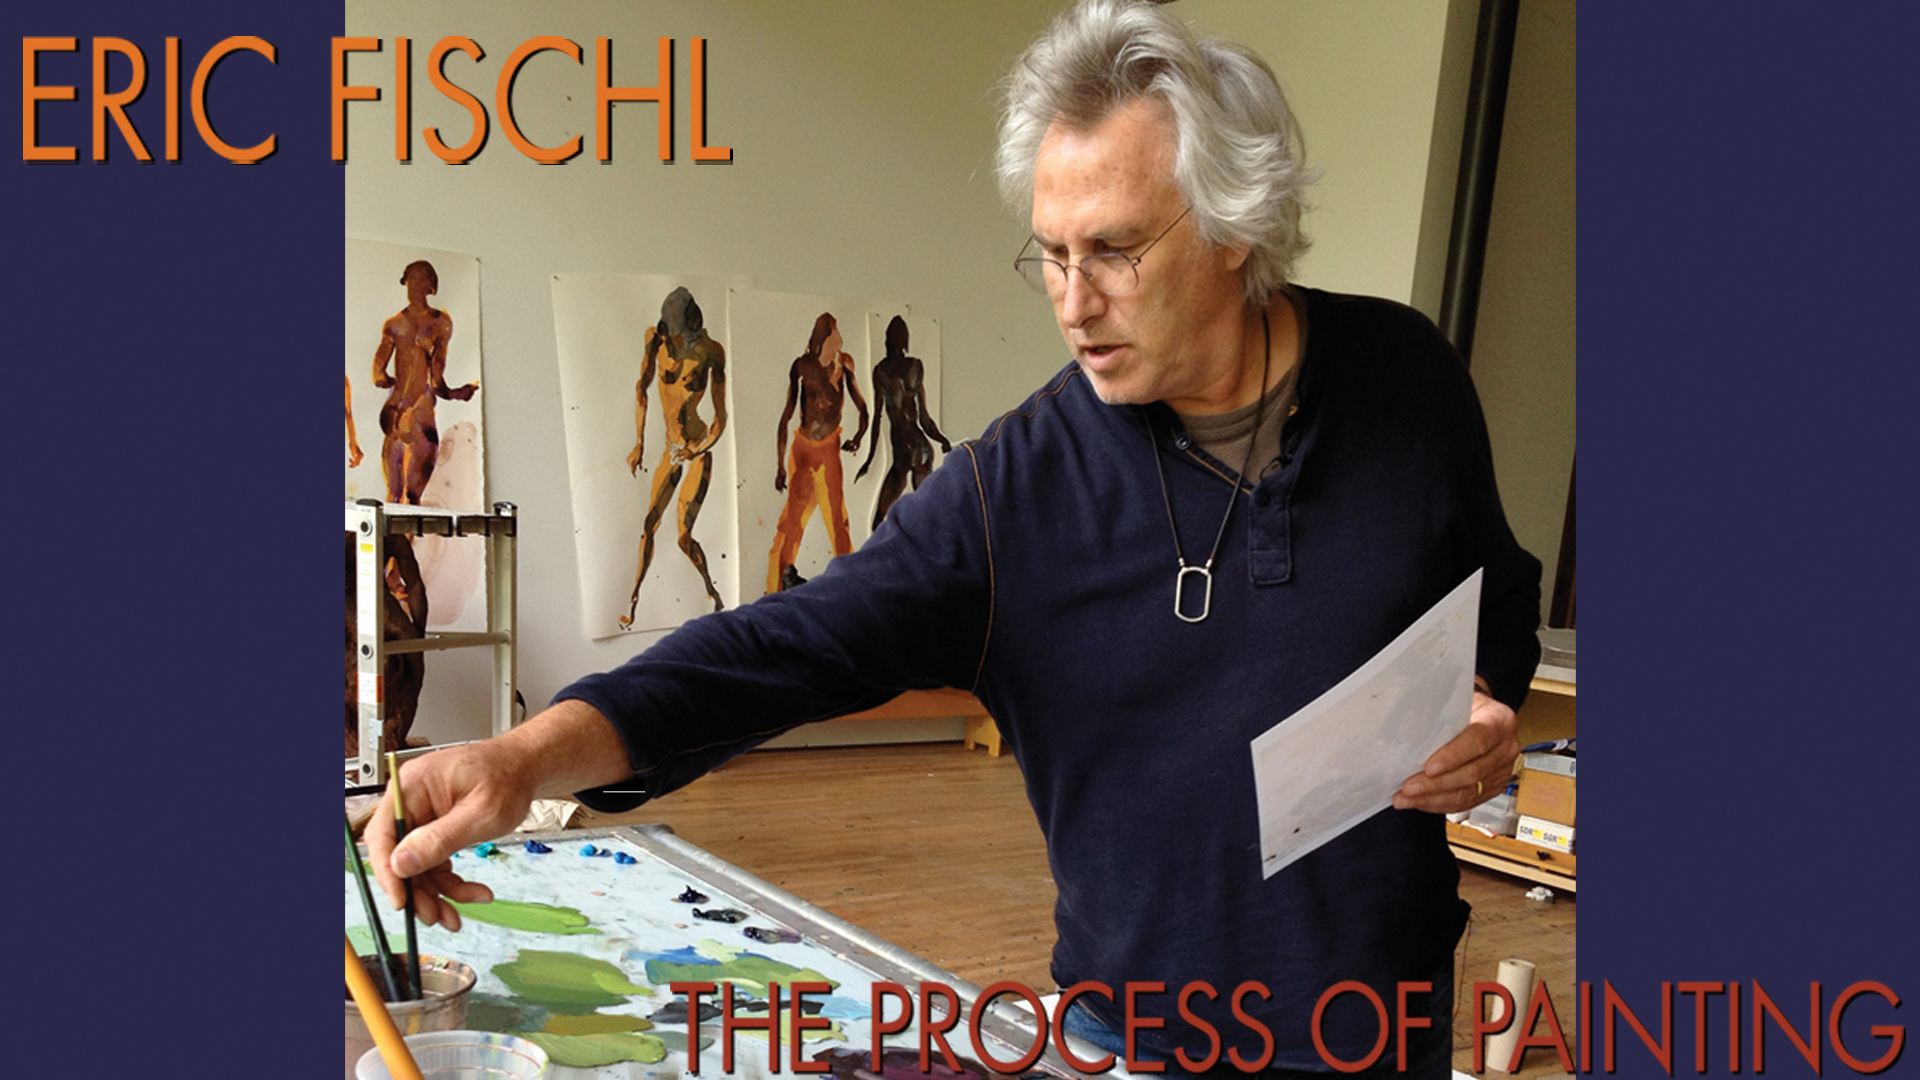 Eric Fischl: The Process of Painting